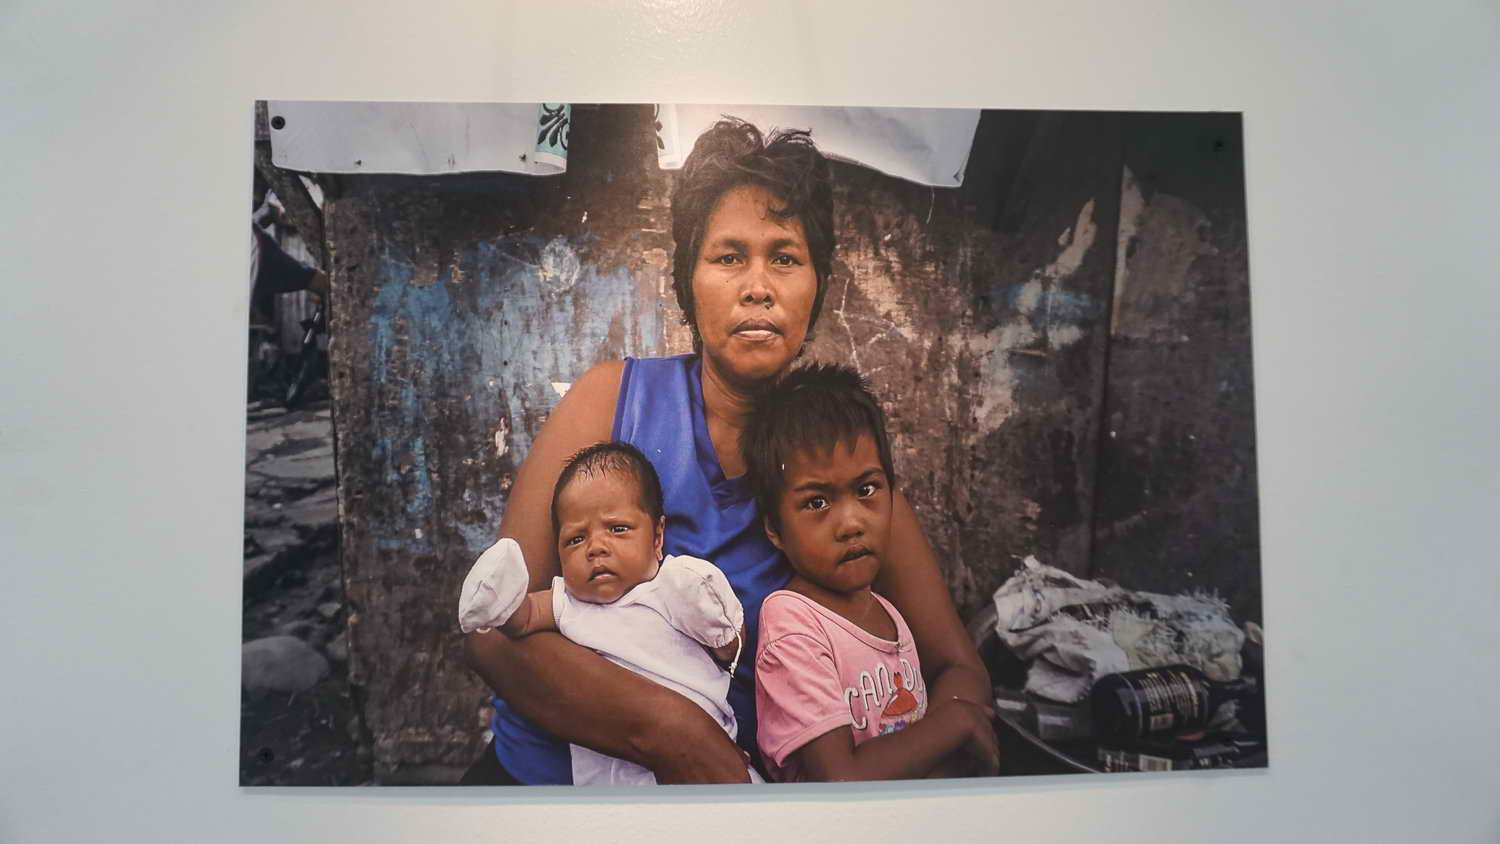 BORN AFTER YOLANDA. 36 year old Sarah dela Peña gave birth to her second daughter, Danica, 4 months after the typhoon hit Tacloban City. Photo by Joebert Calinao